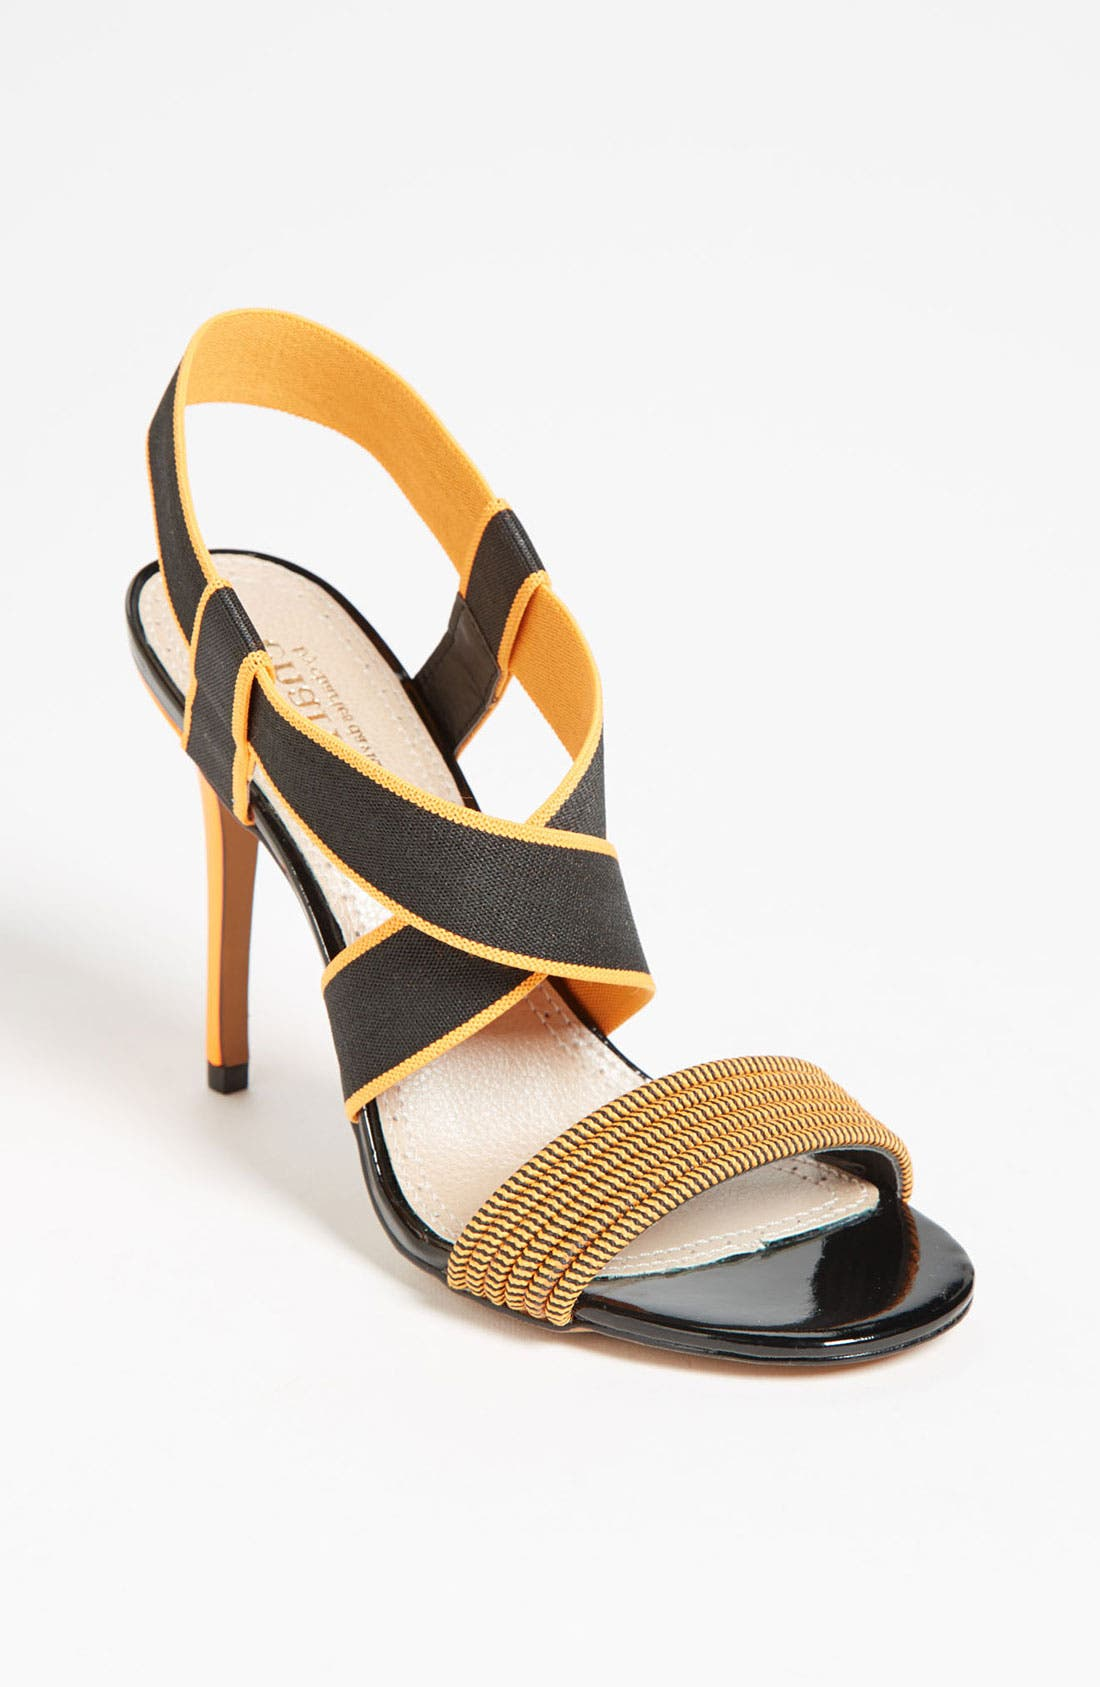 Alternate Image 1 Selected - Charles by Charles David 'Regency' Sandal